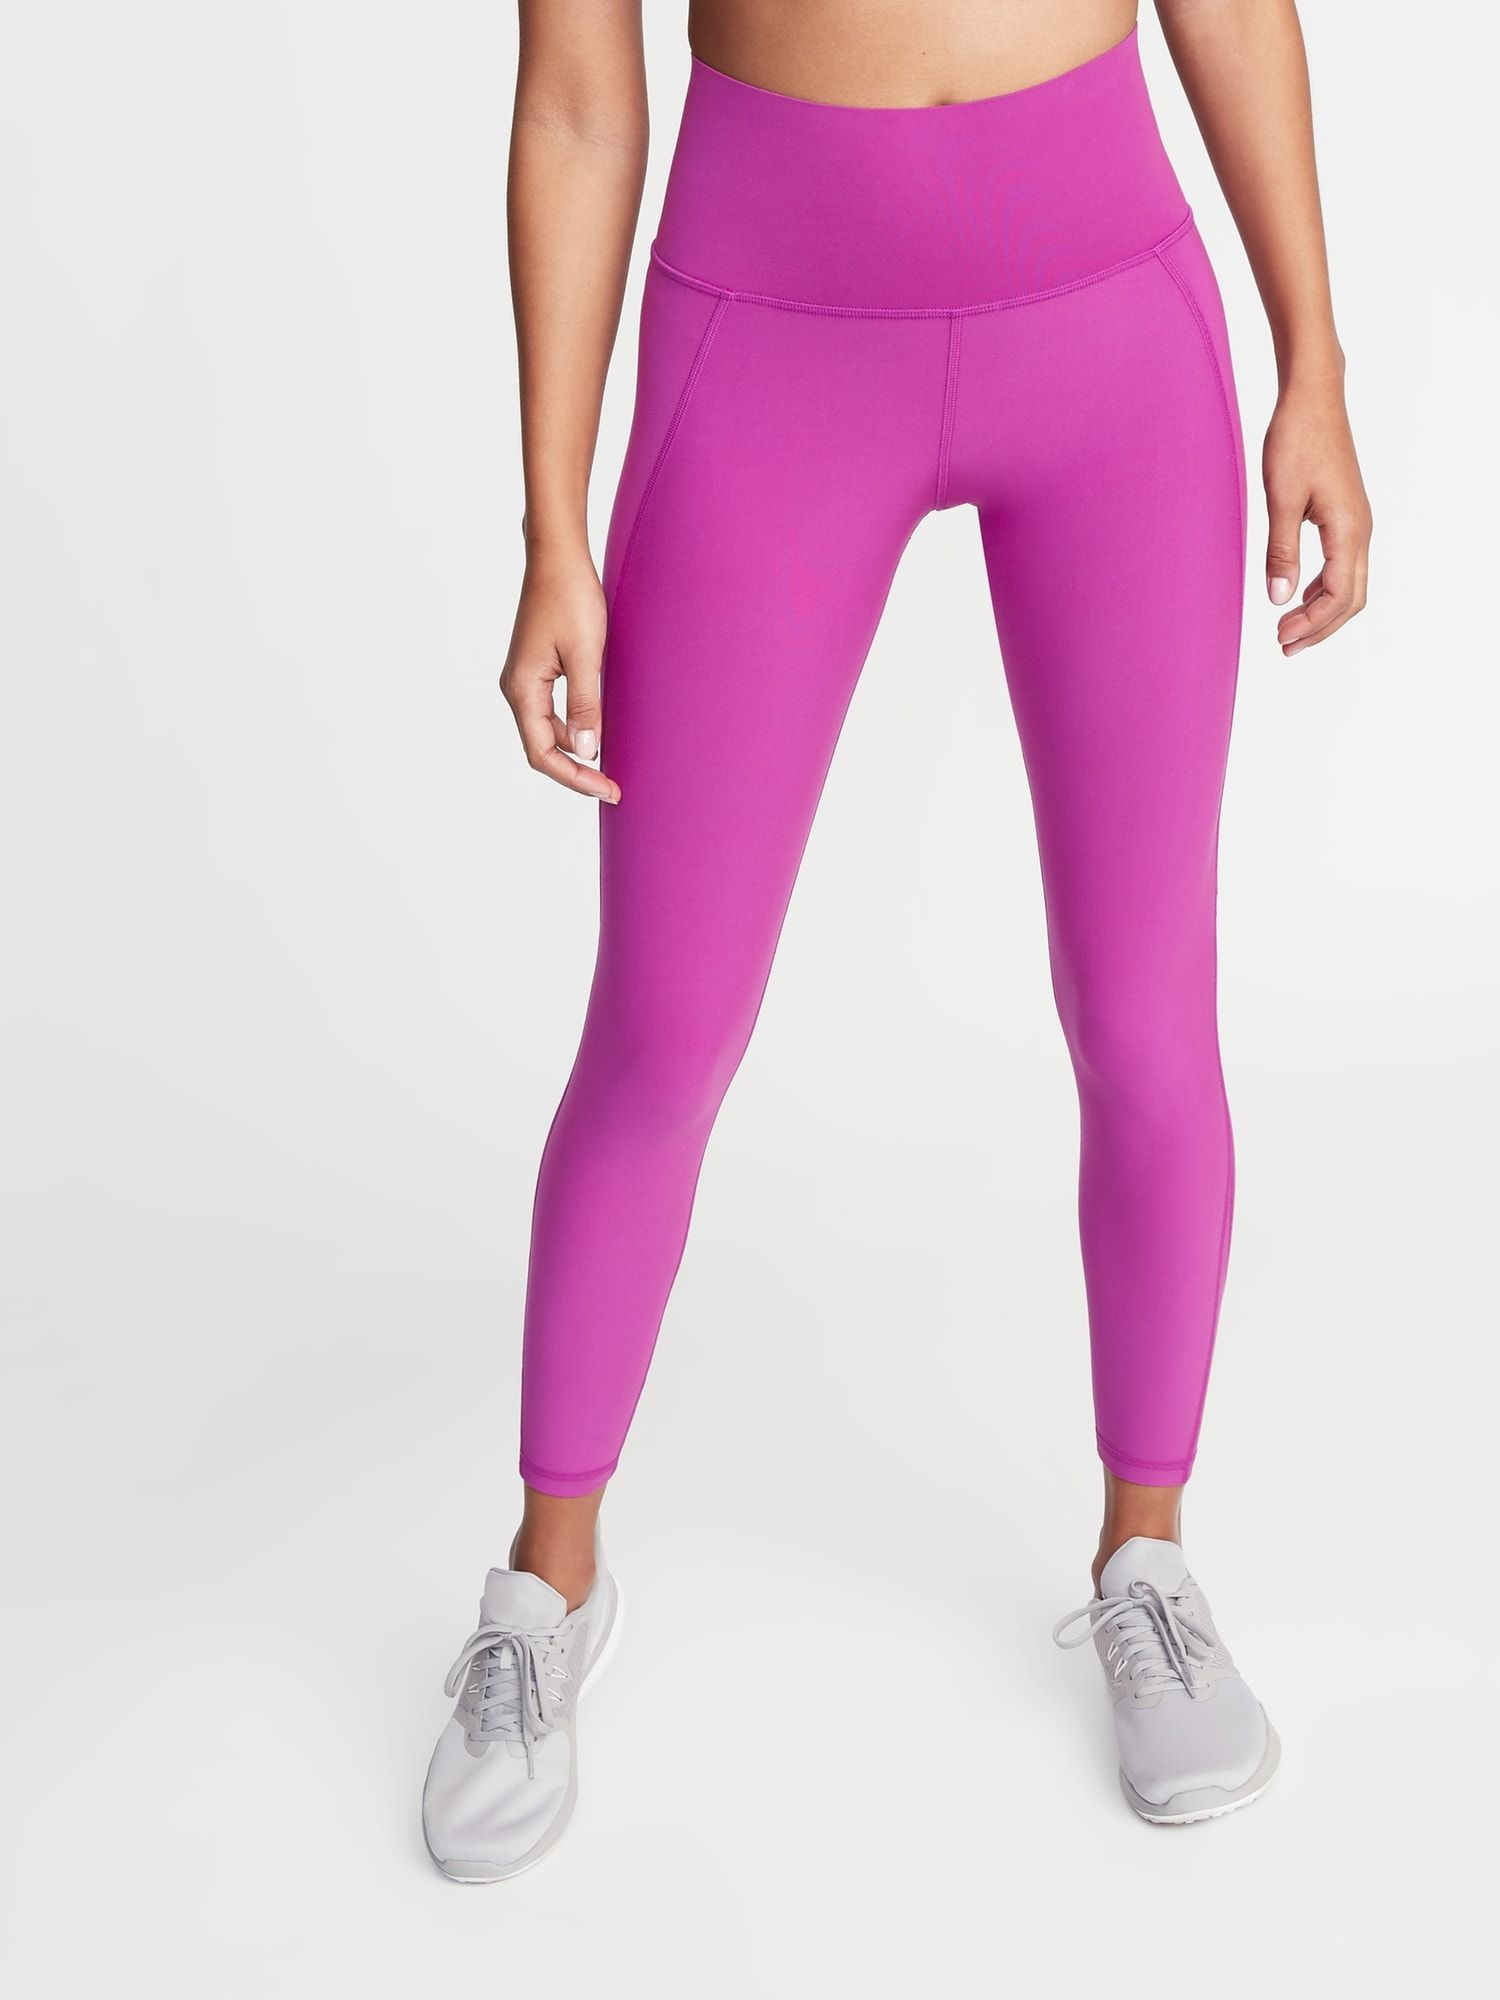 0f7cdb8475 High-Rise Elevate Built-In Sculpt 7/8-Length Compression Leggings for